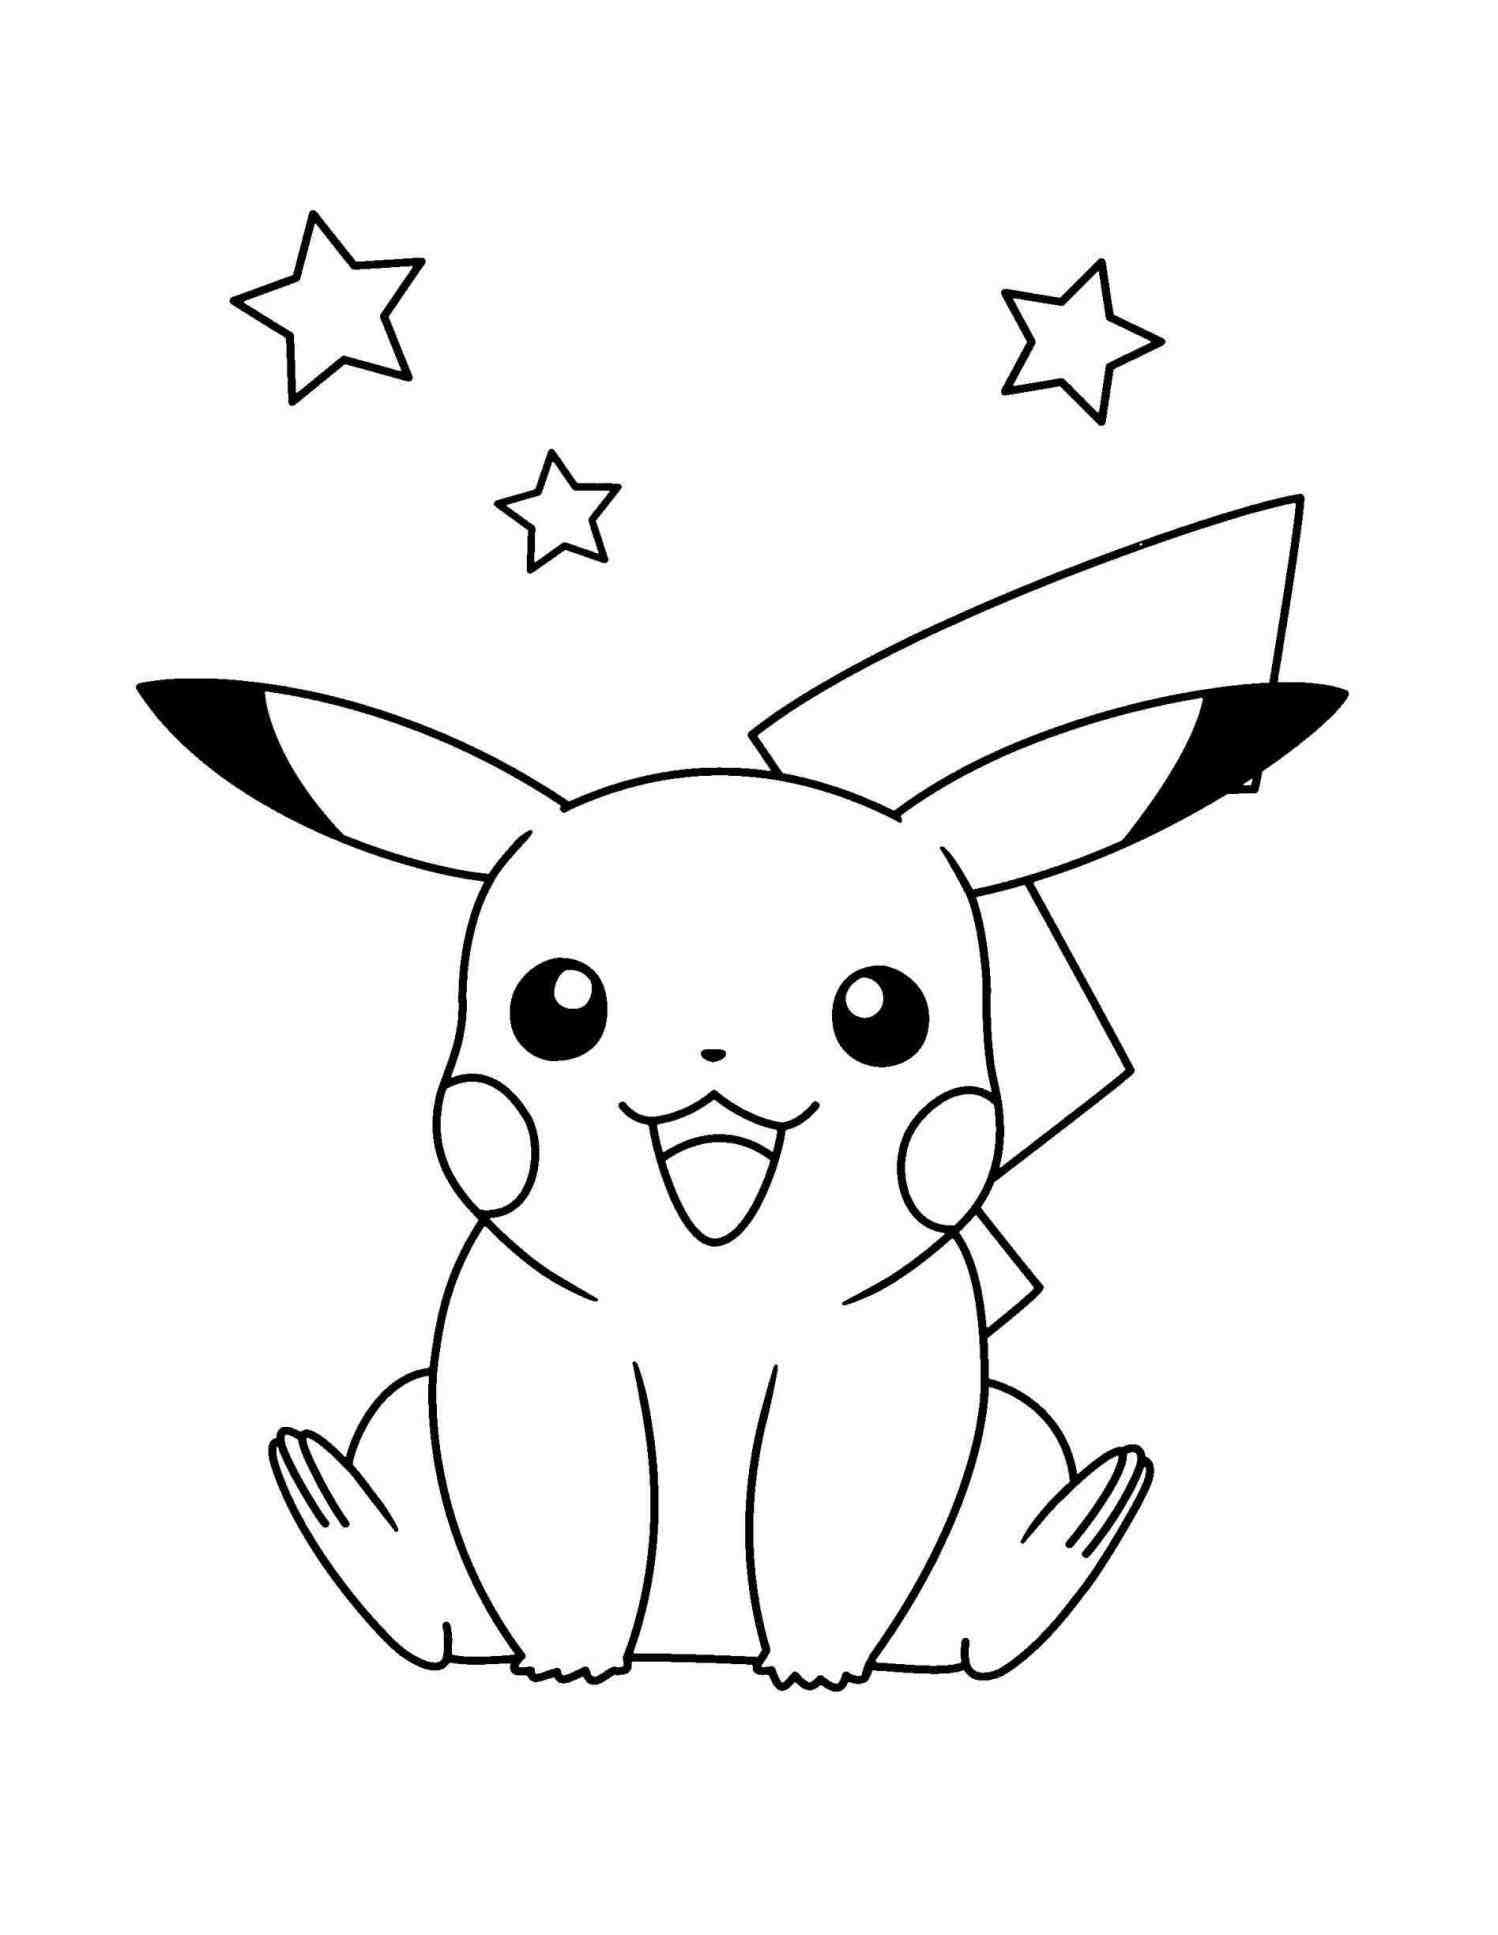 1498x1935 How Cute Easy Drawings Of Pikachu To Draw Kawaii Chibi Pichu